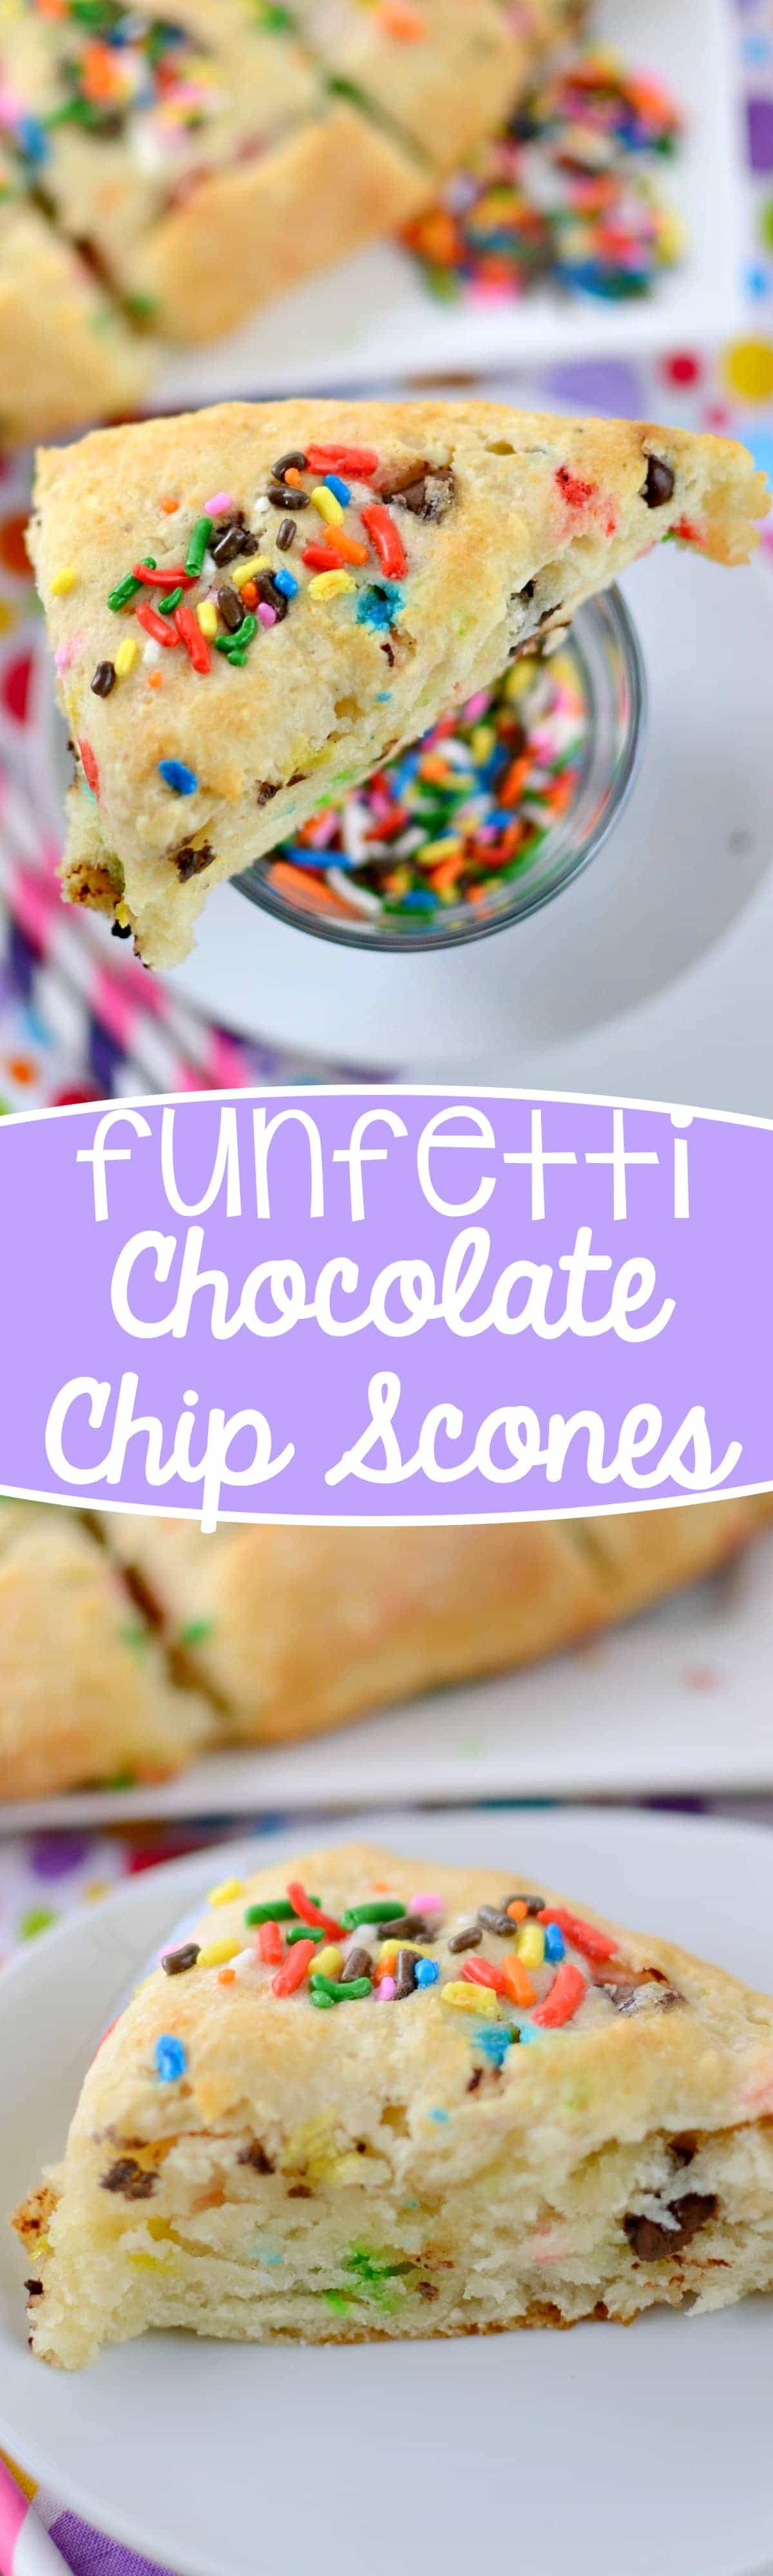 Funfetti Chocolate Chip Scones - these easy scones are the BEST! They start with a cake mix and are super fluffy and the perfect breakfast recipe.